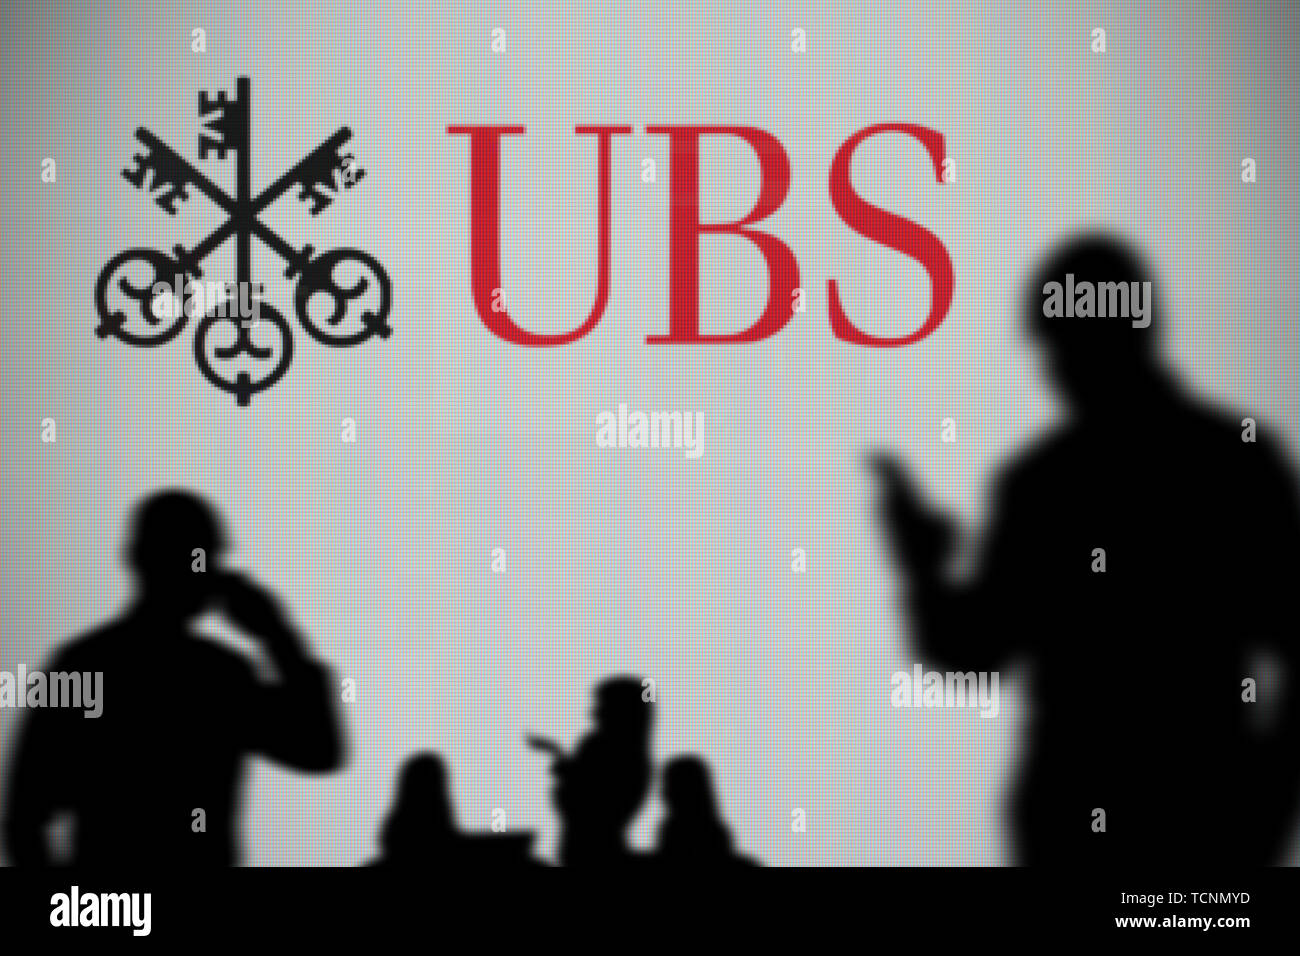 The UBS logo is seen on an LED screen in the background